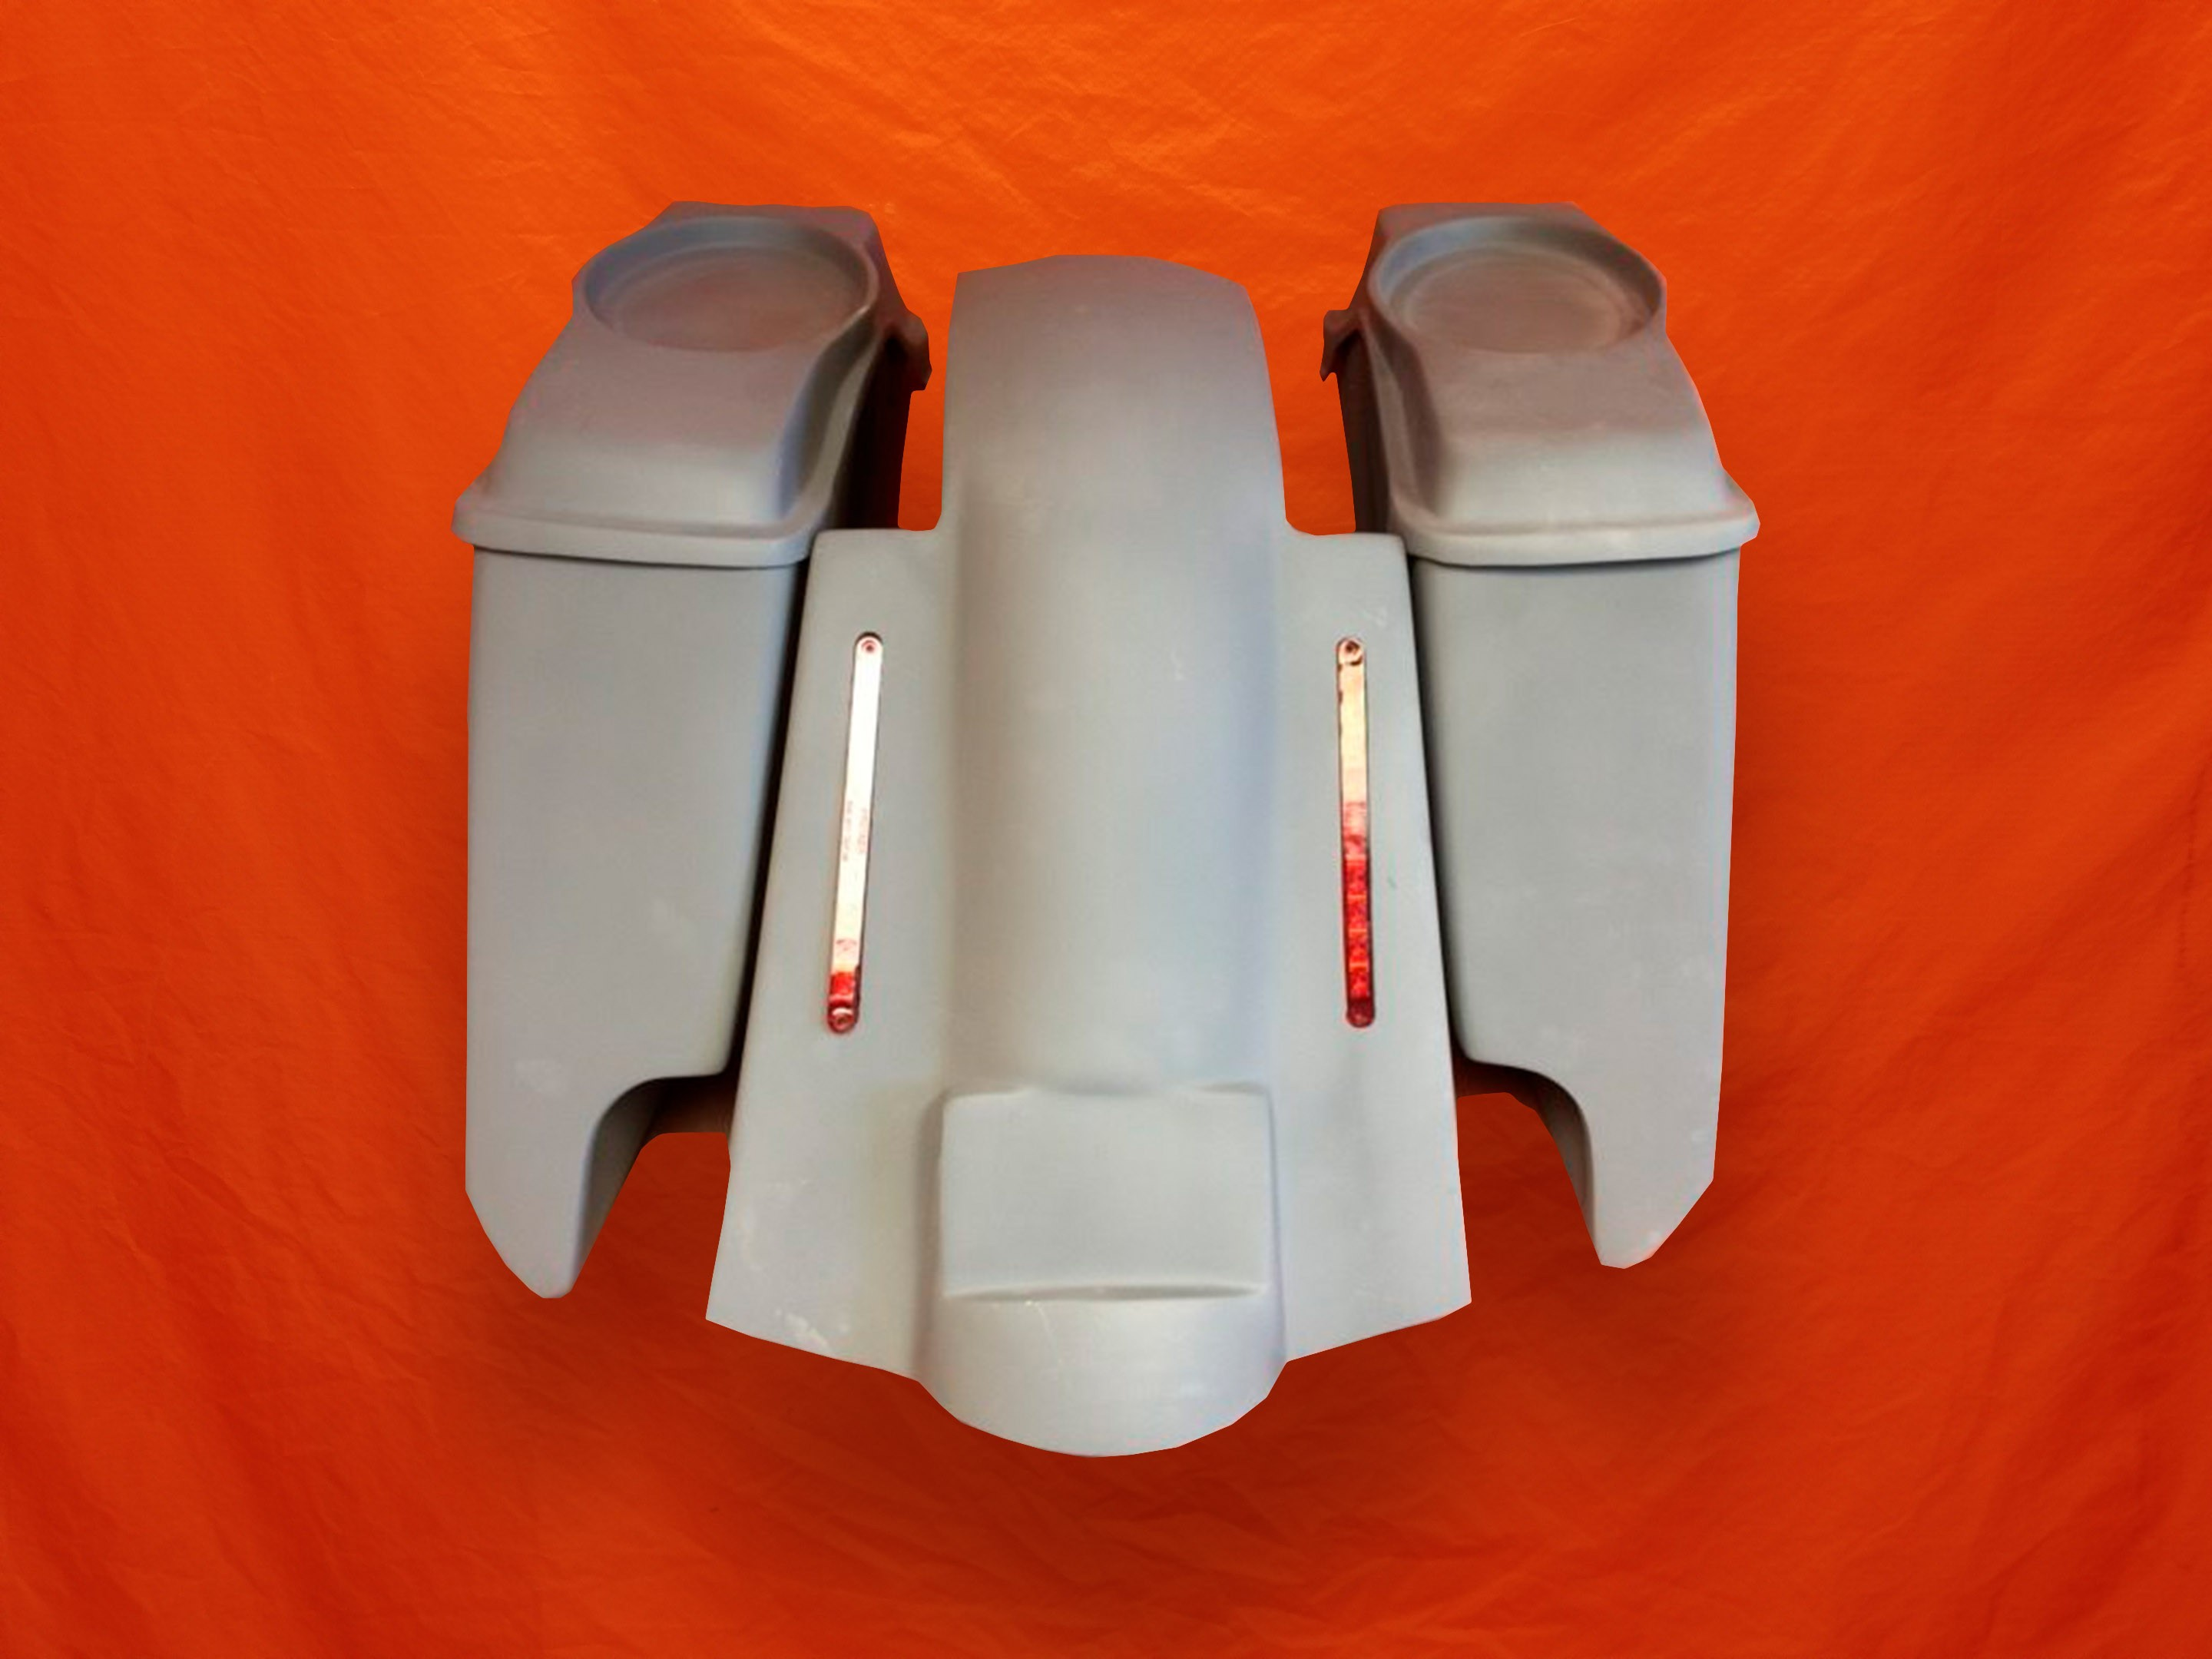 Harley-Davidson-5-Extended-Saddlebags-CutOuts-with-Replacement-LED-Fender-and-6-5-inch-Speaker-Lids-89-08